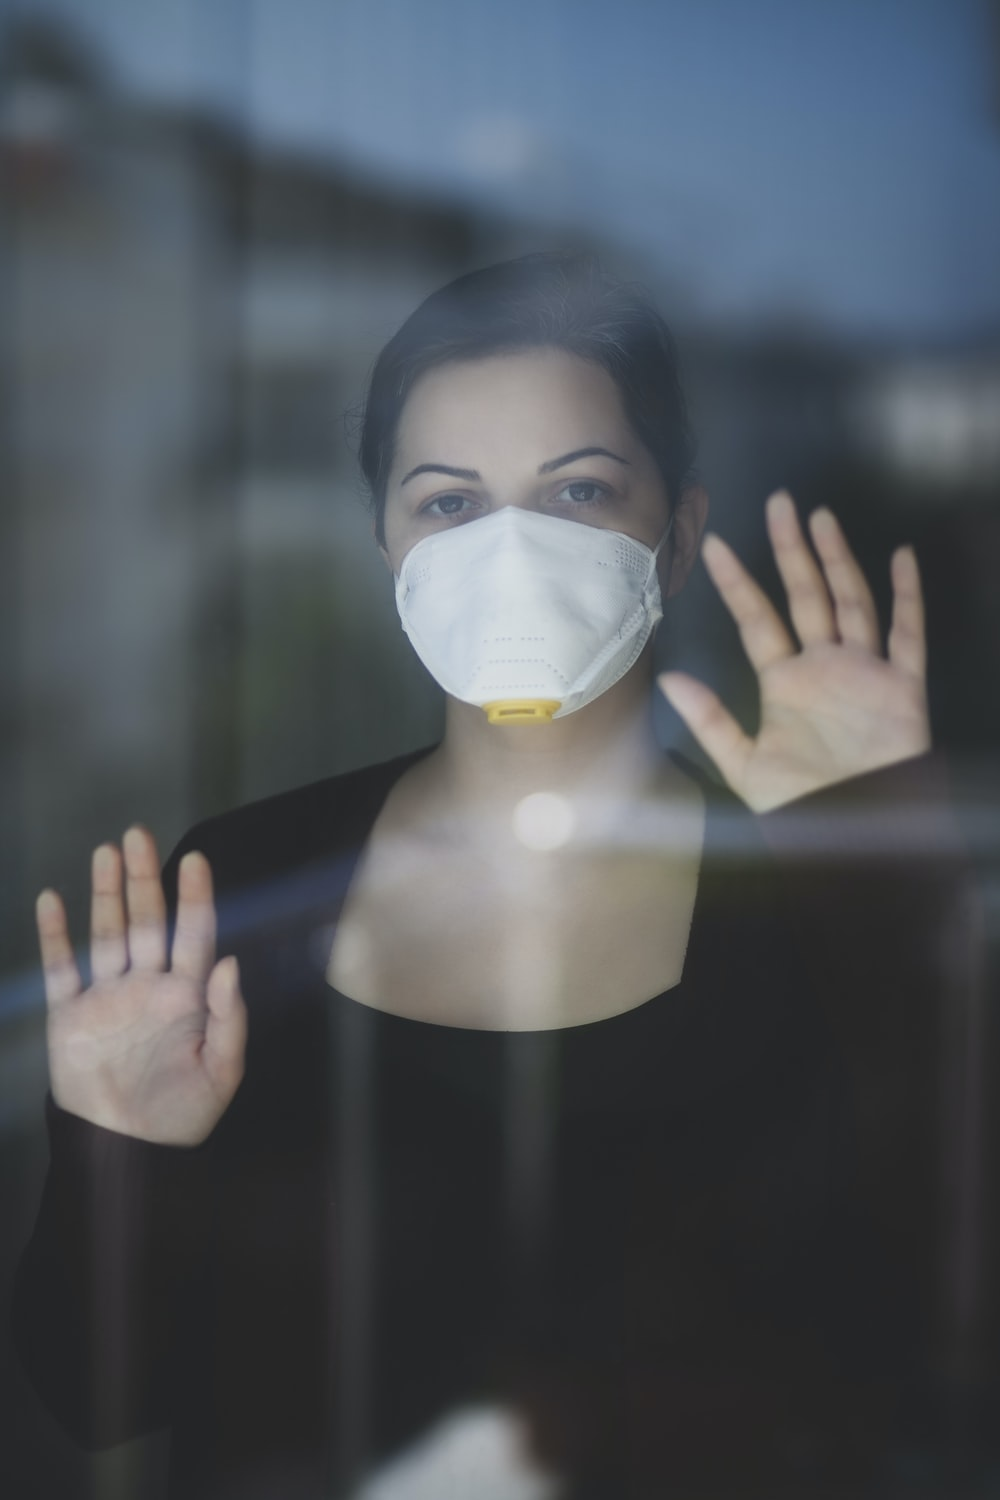 person covering face with white mask